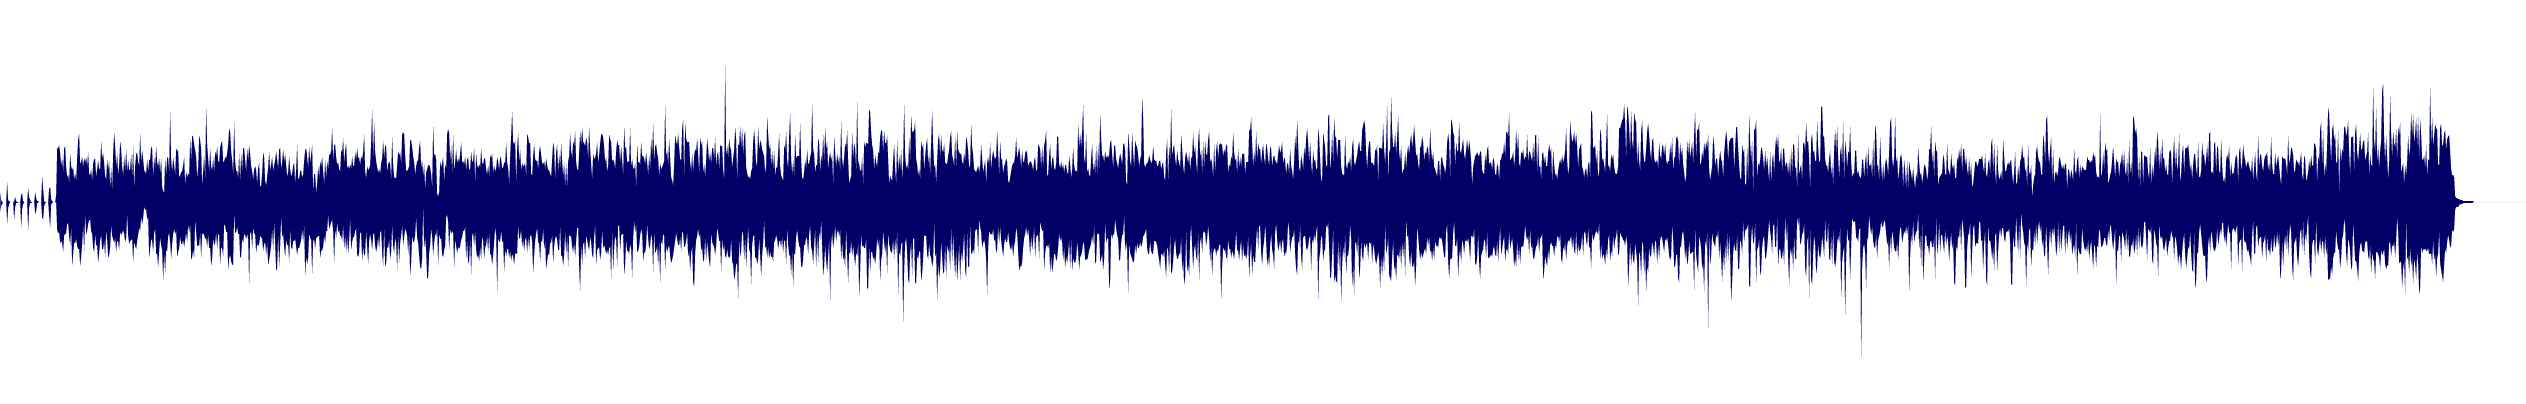 waveform of track #96409